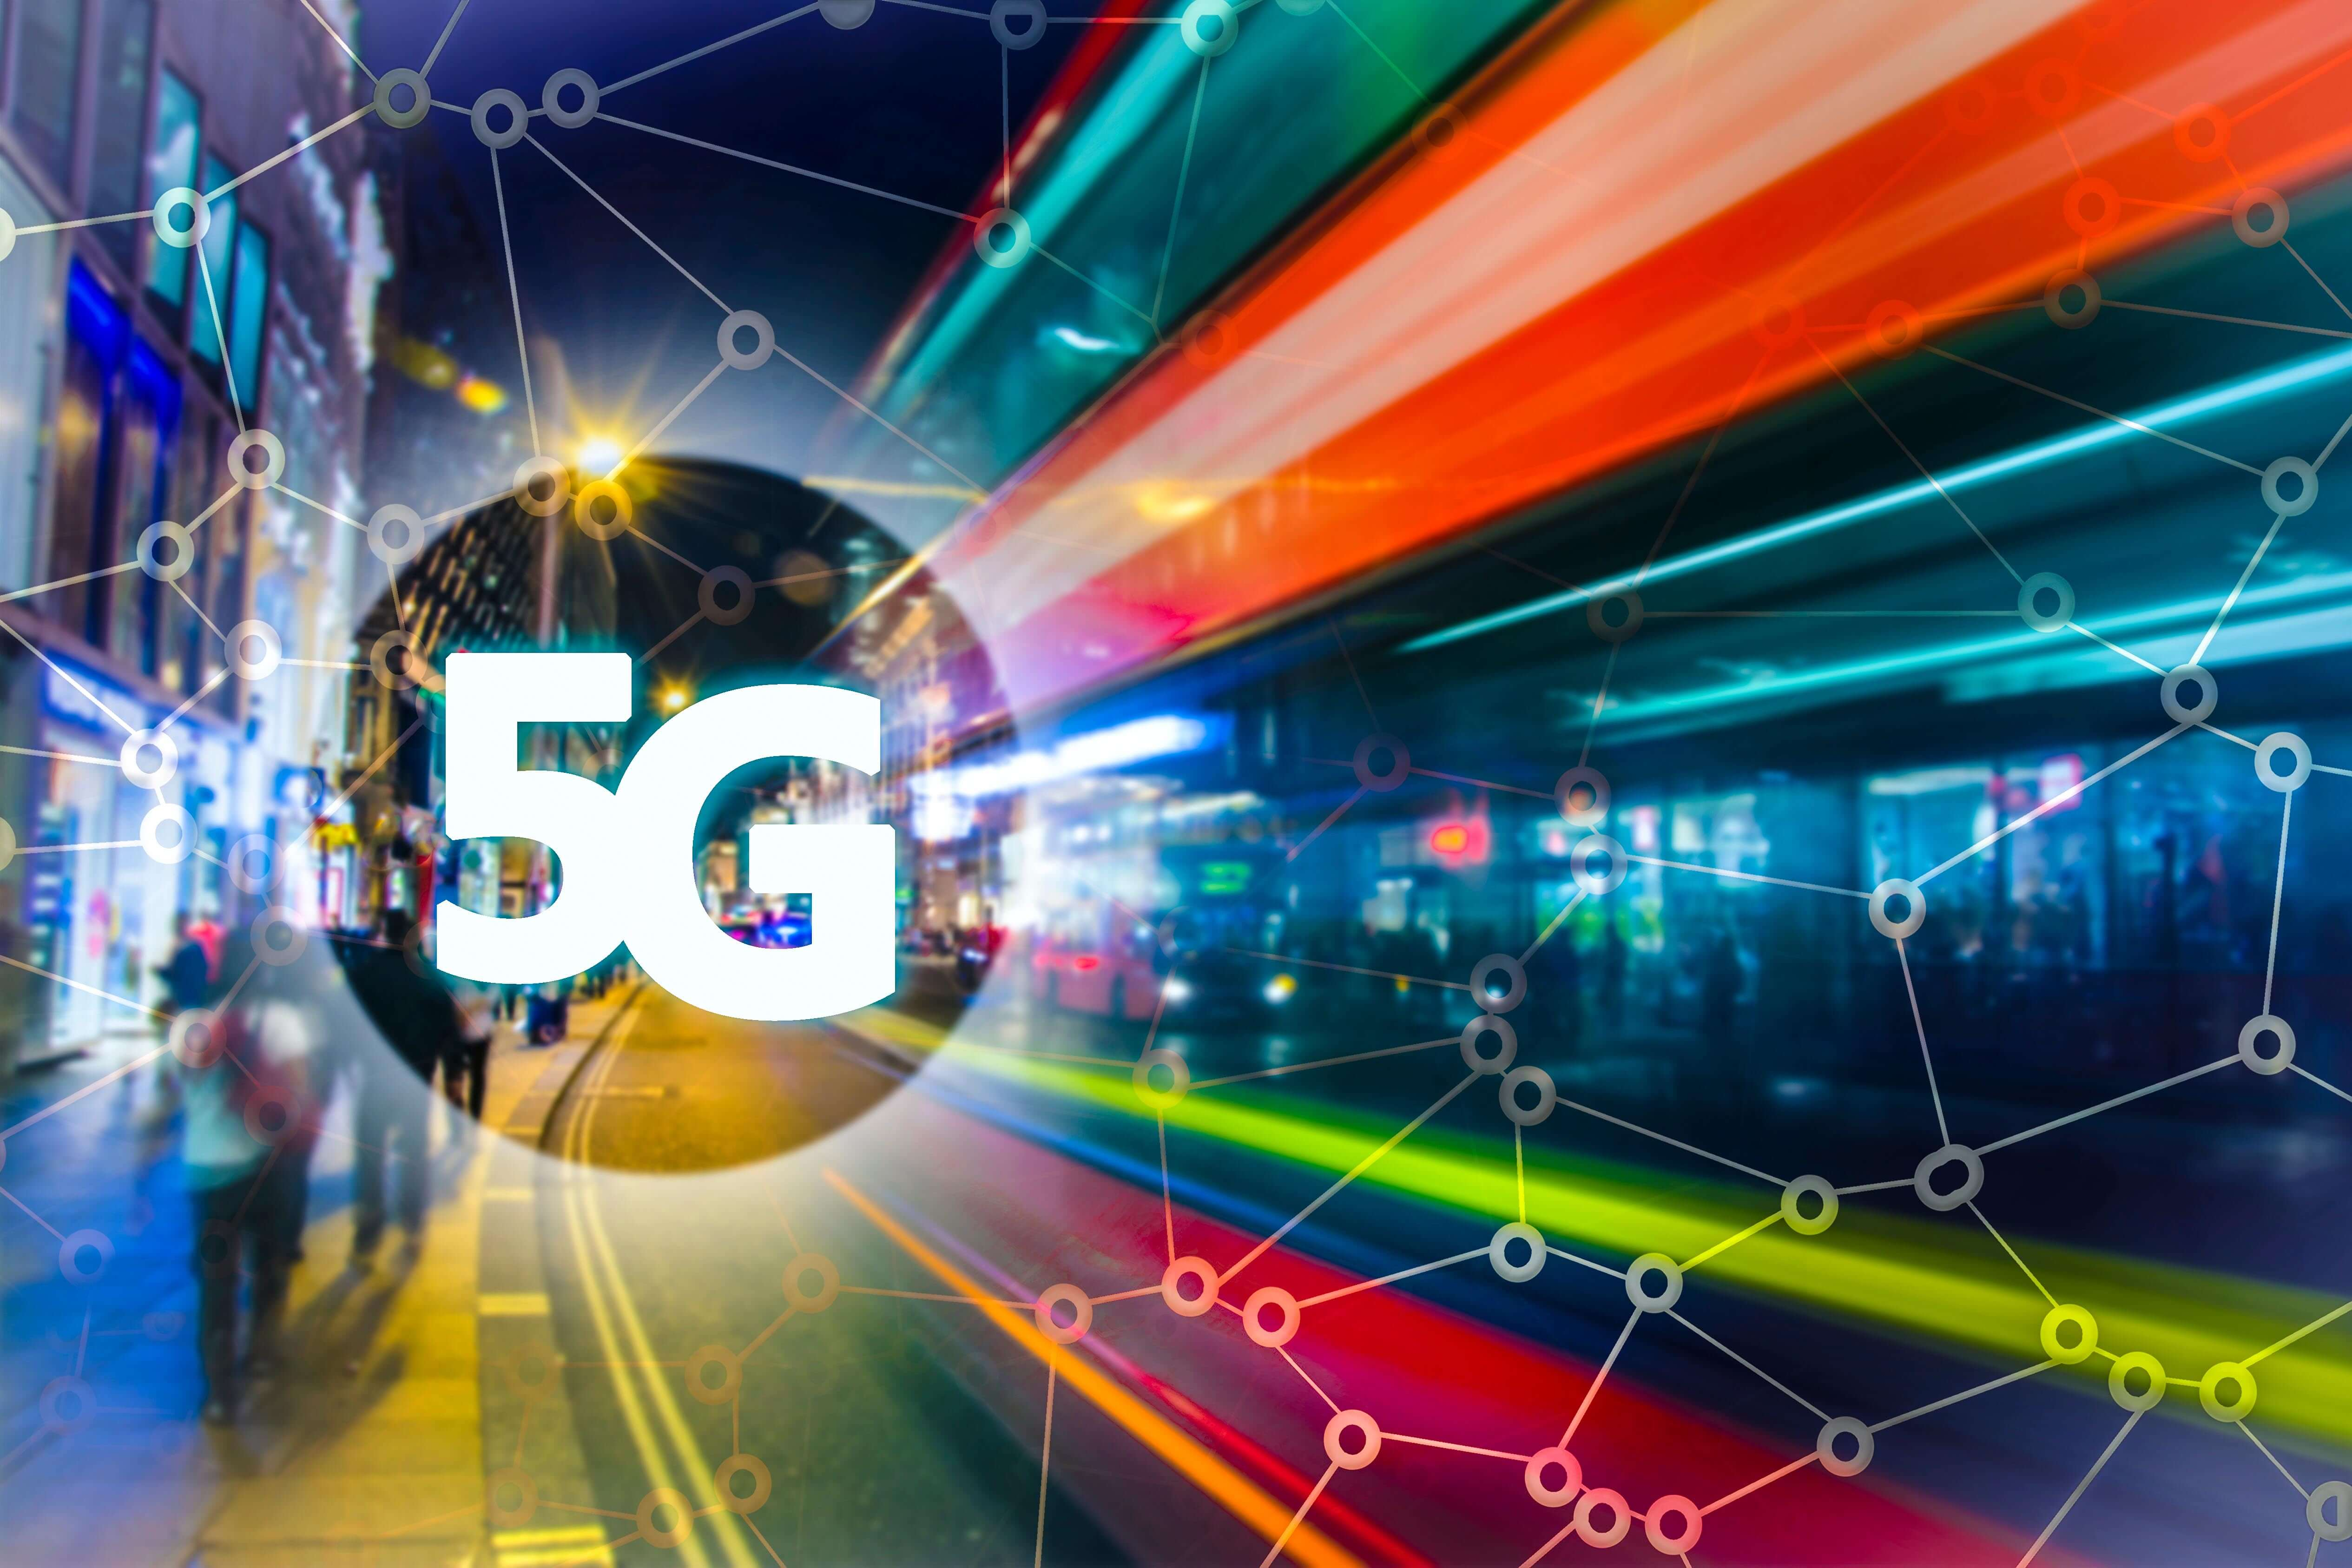 UAE residents to get hands-on experience of 5G soon: Etisalat